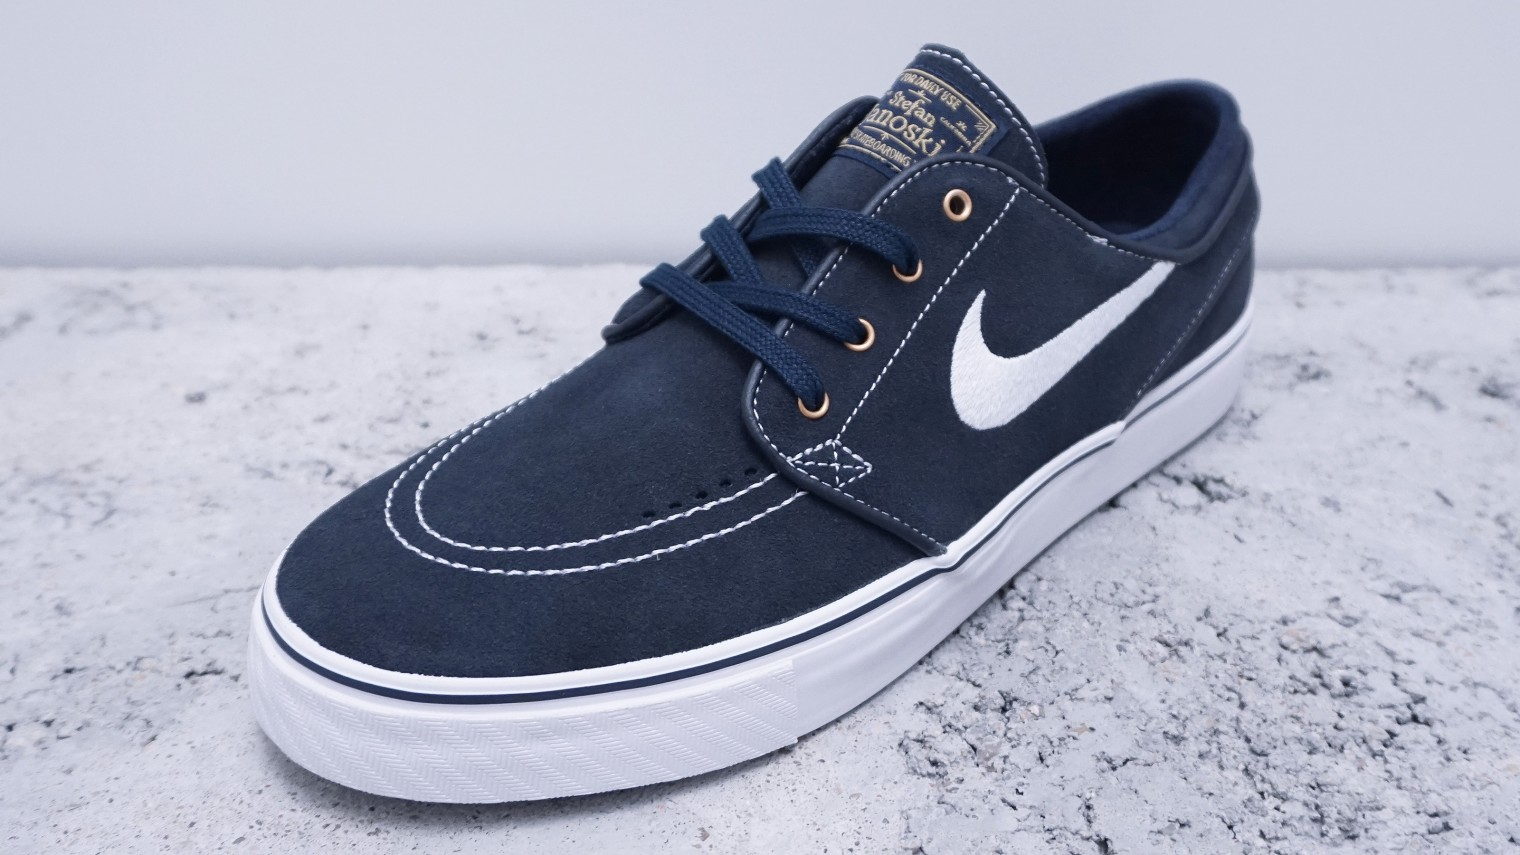 nike sb zoom stefan janoski dark obsidian wei. Black Bedroom Furniture Sets. Home Design Ideas